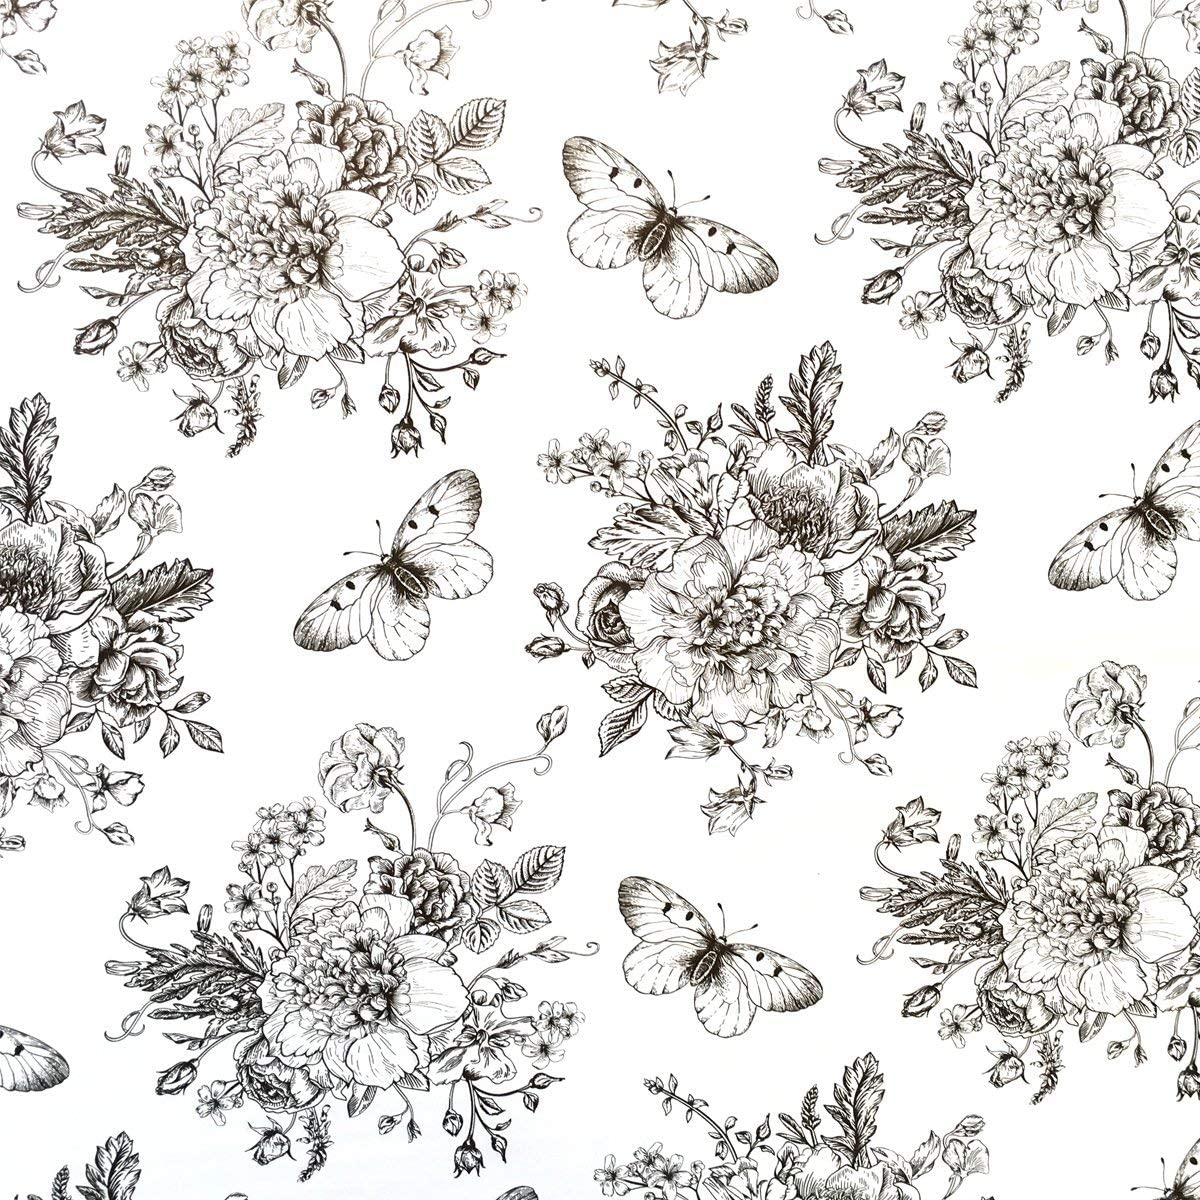 TaoGift Self Adhesive Peony Floral Butterfly Shelf Liner Contact Paper for Dresser Cabinets Walls Backsplash Furniture Decal 17.7x117 Inches